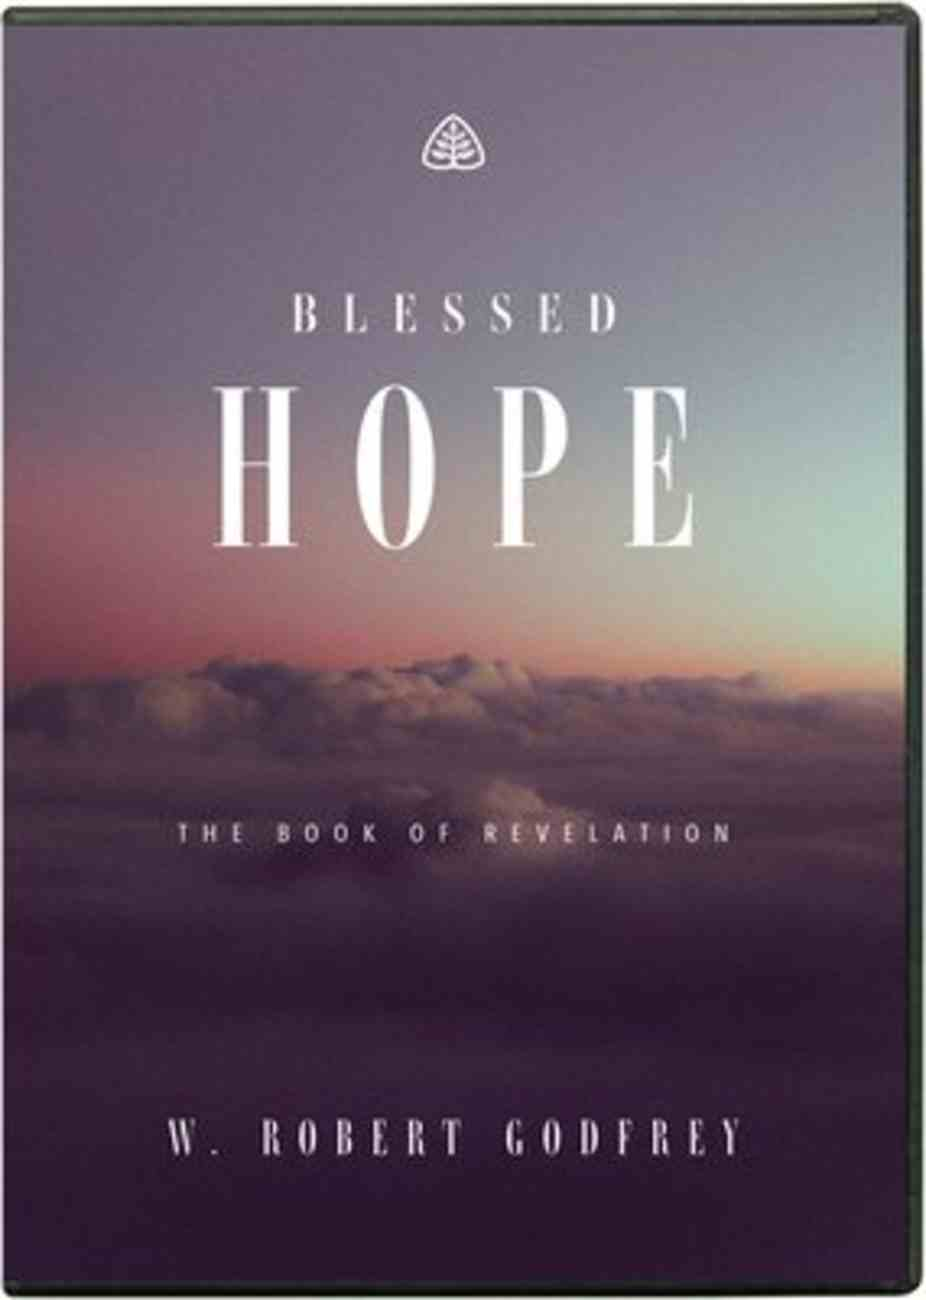 Blessed Hope: The Book of Revelation (24 Twenty Three Minute Sessions) (Dvd) DVD